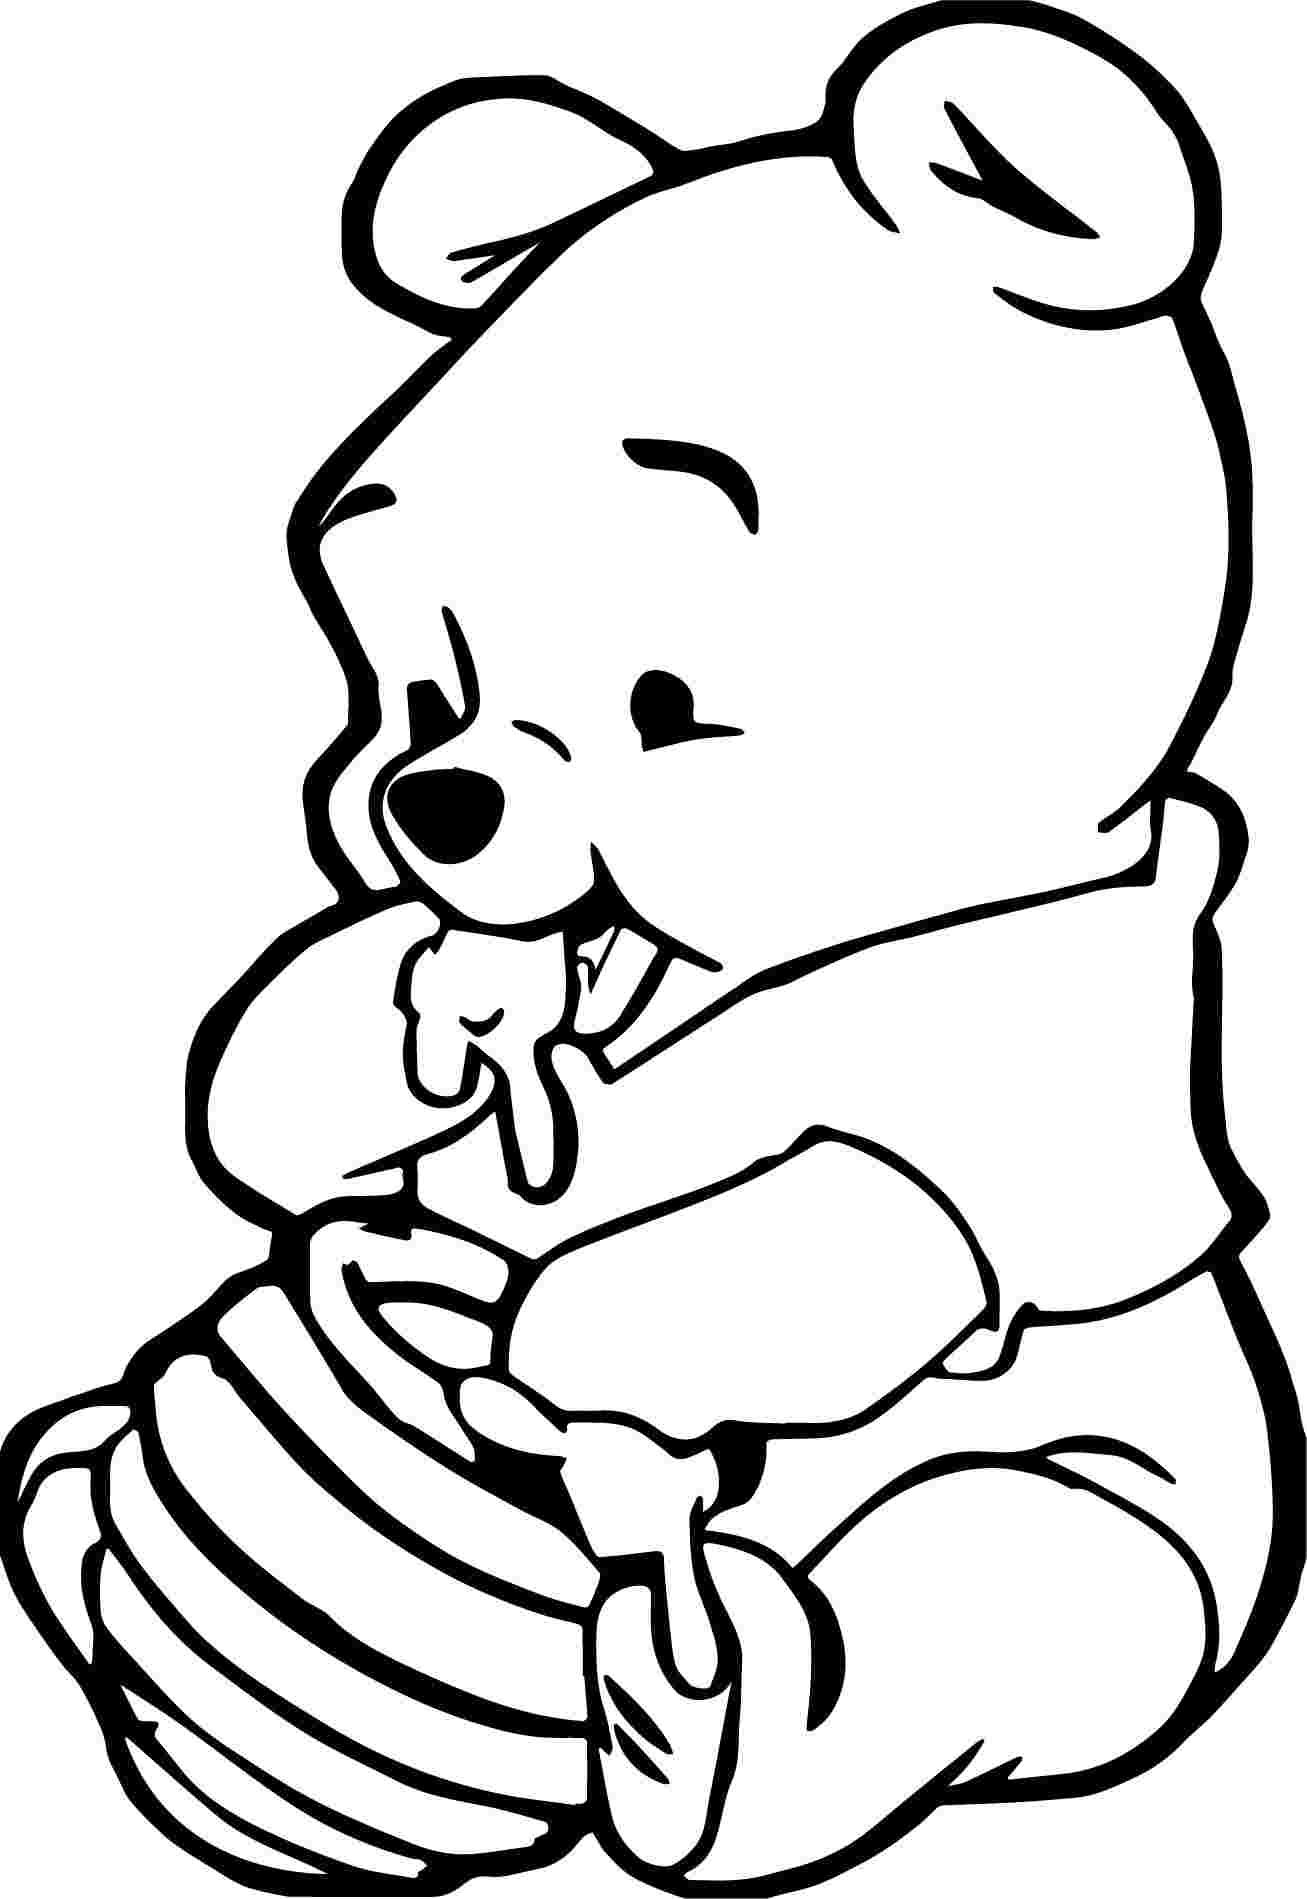 Coloring Pages Of Baby Eeyore Animal Coloring Pages Zoo Animal Coloring Pages Disney Coloring Pages